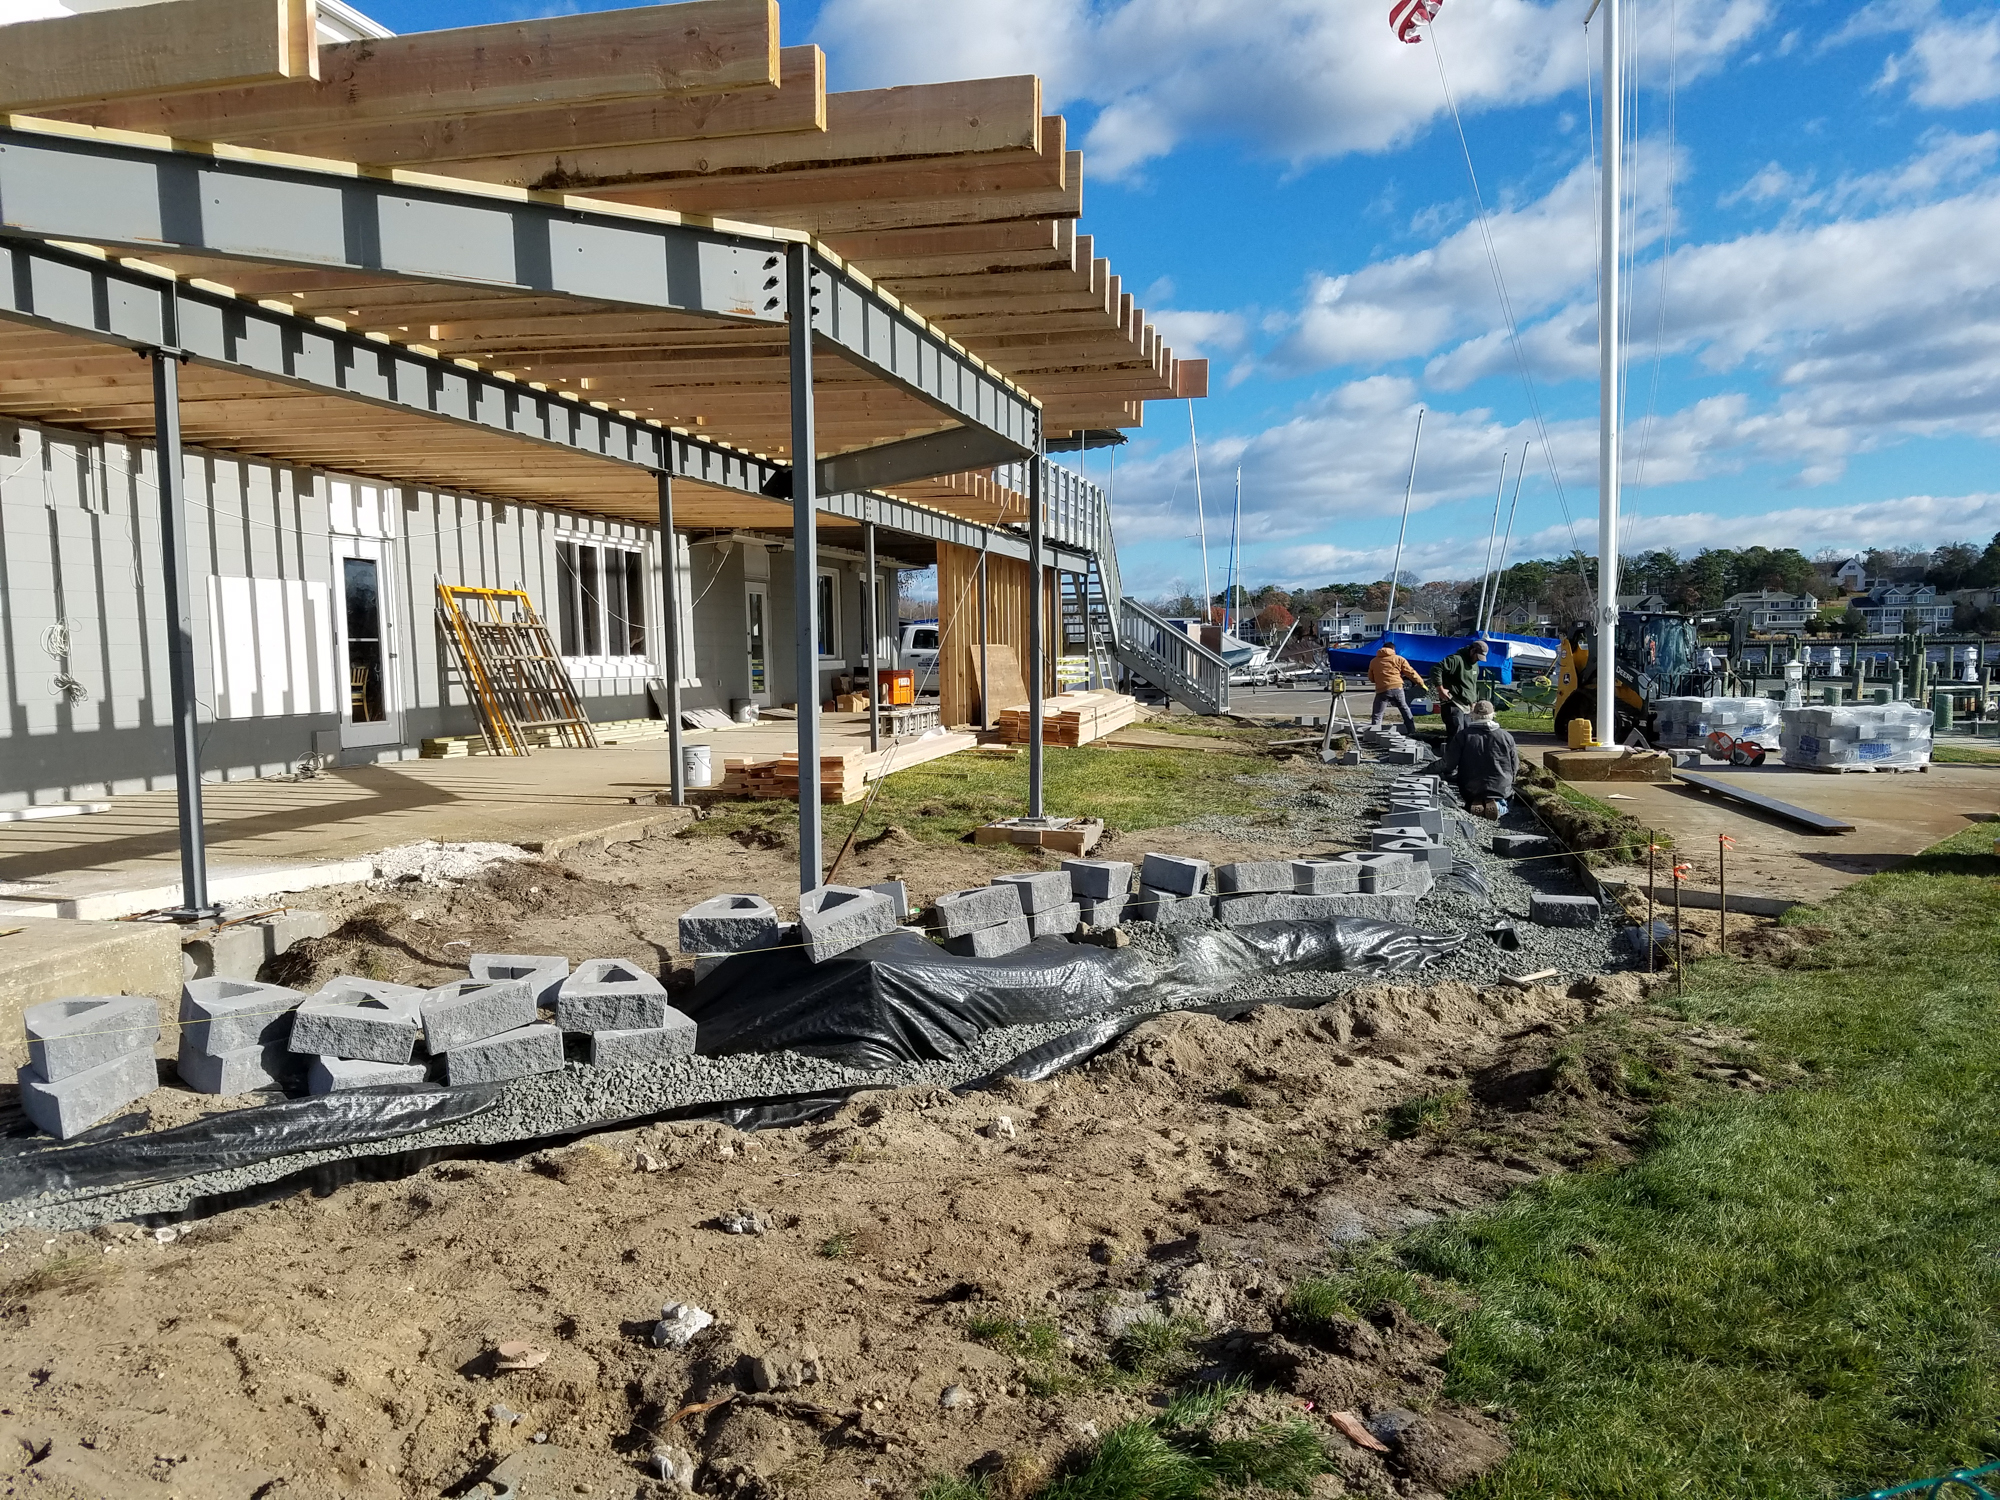 yetman_building_2019-2